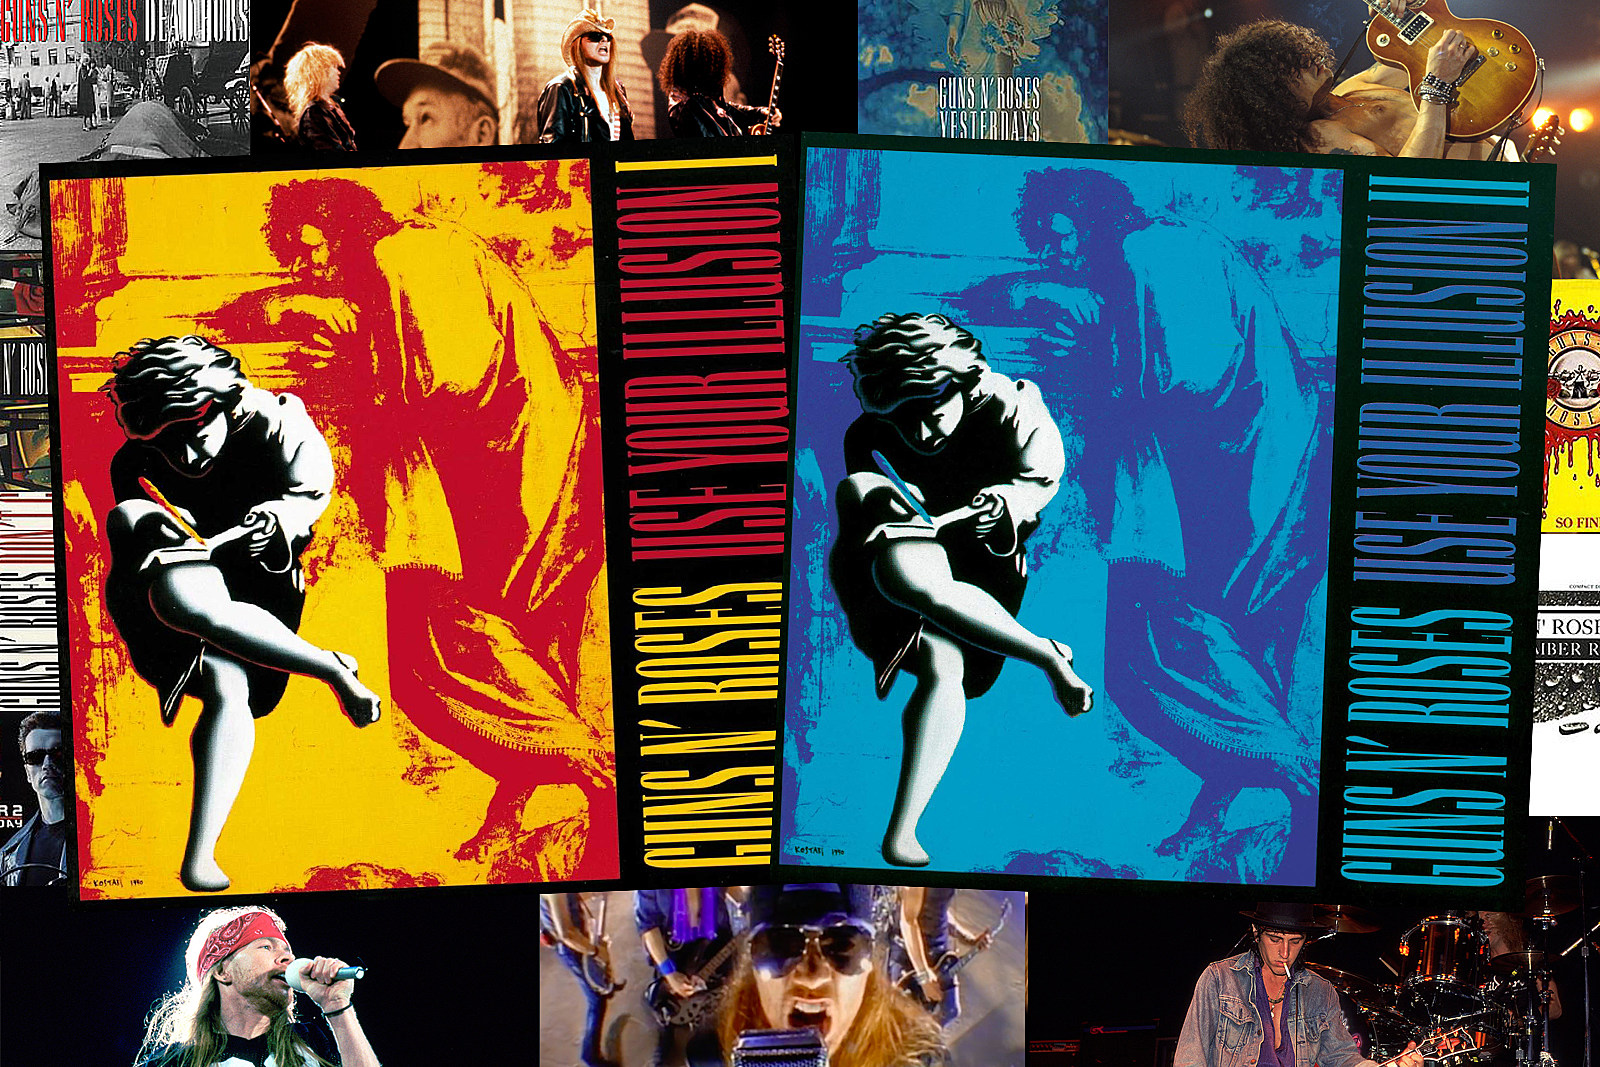 Guns N' Roses 'Use Your Illusion': The Stories Behind Every Song